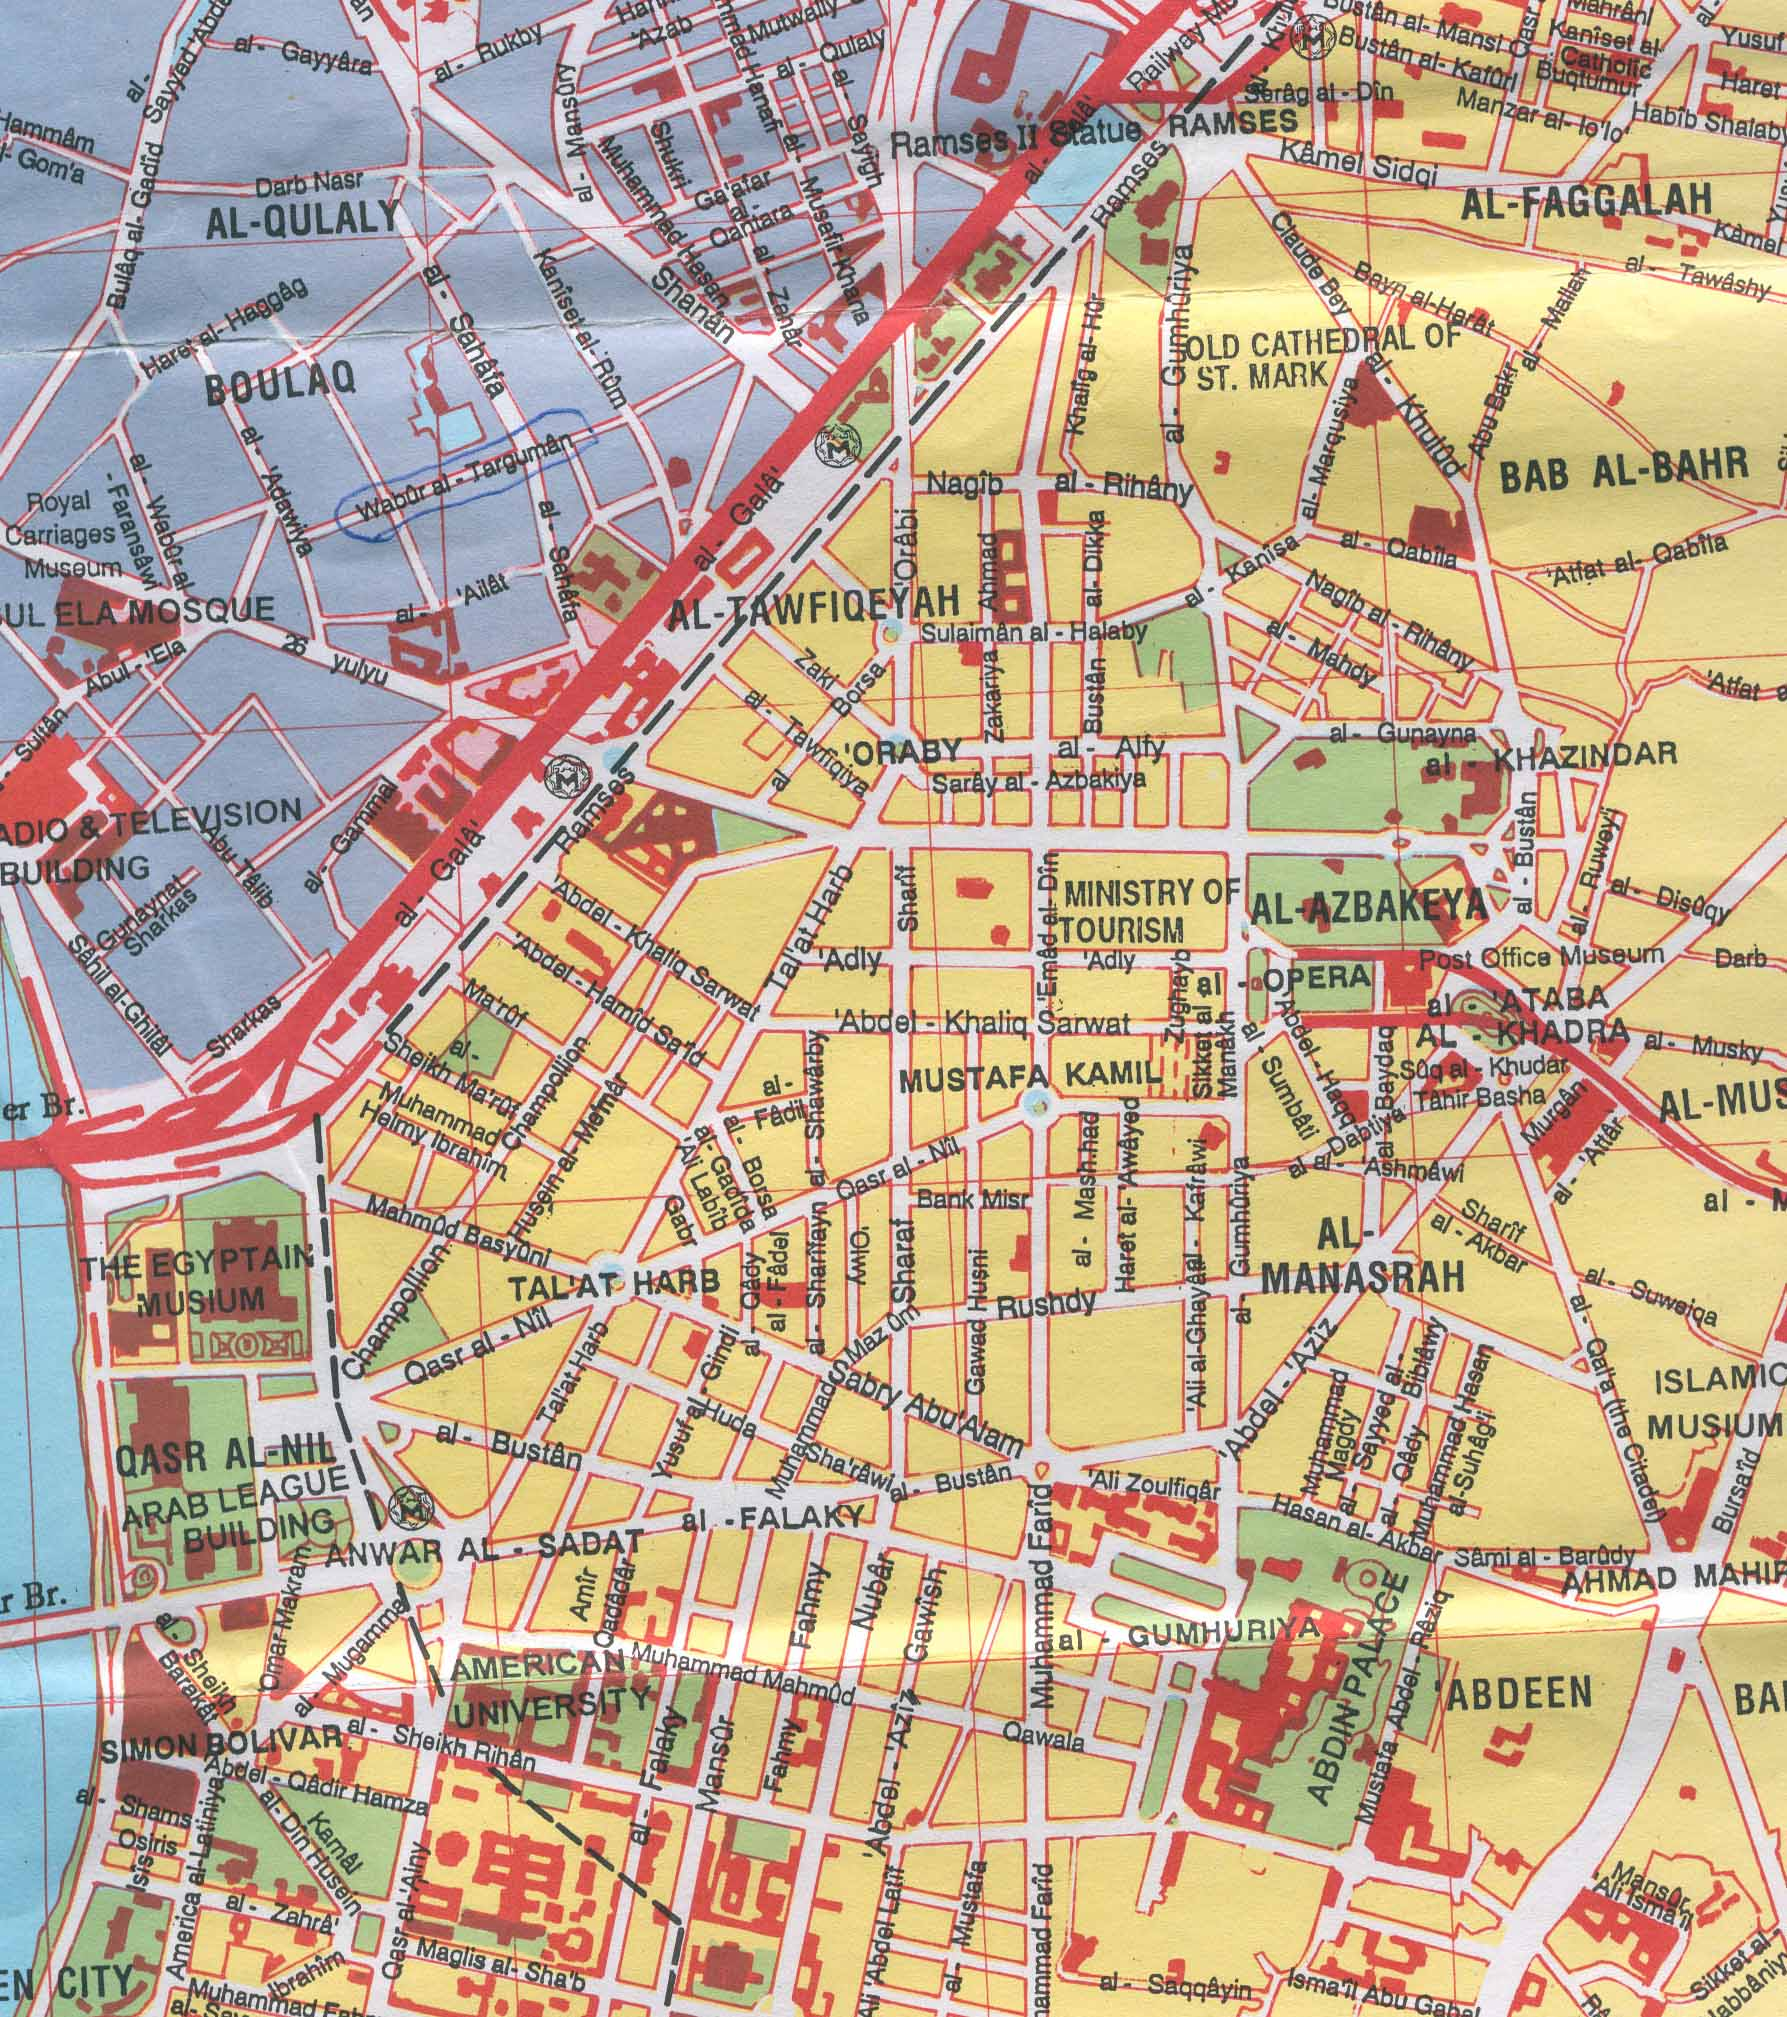 Large Cairo Maps for Free Download and Print HighResolution and